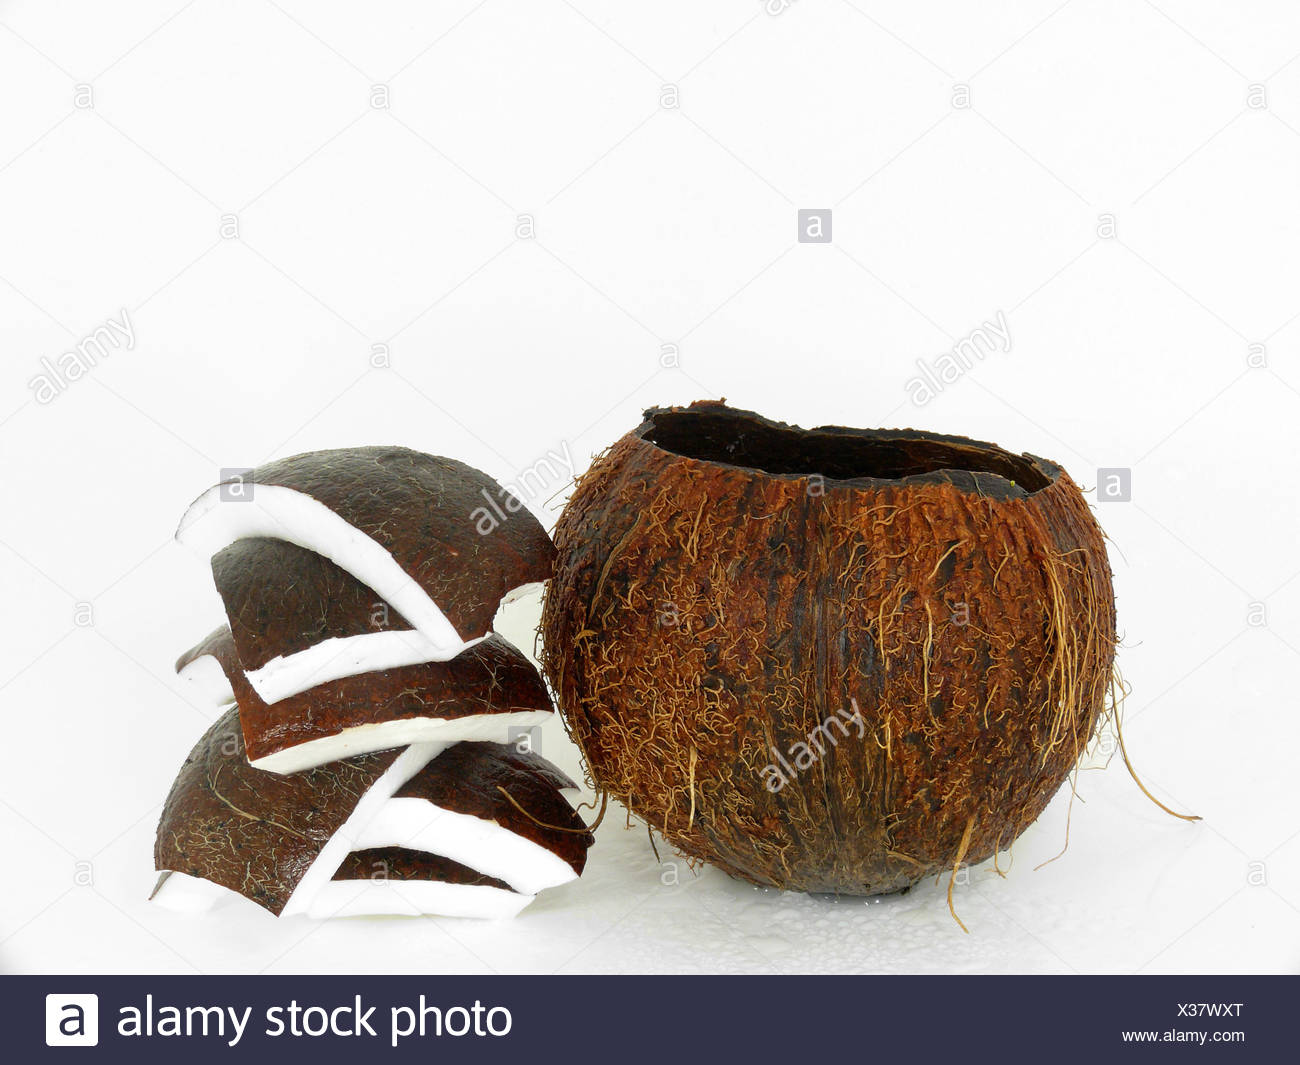 tropical entire - Stock Image